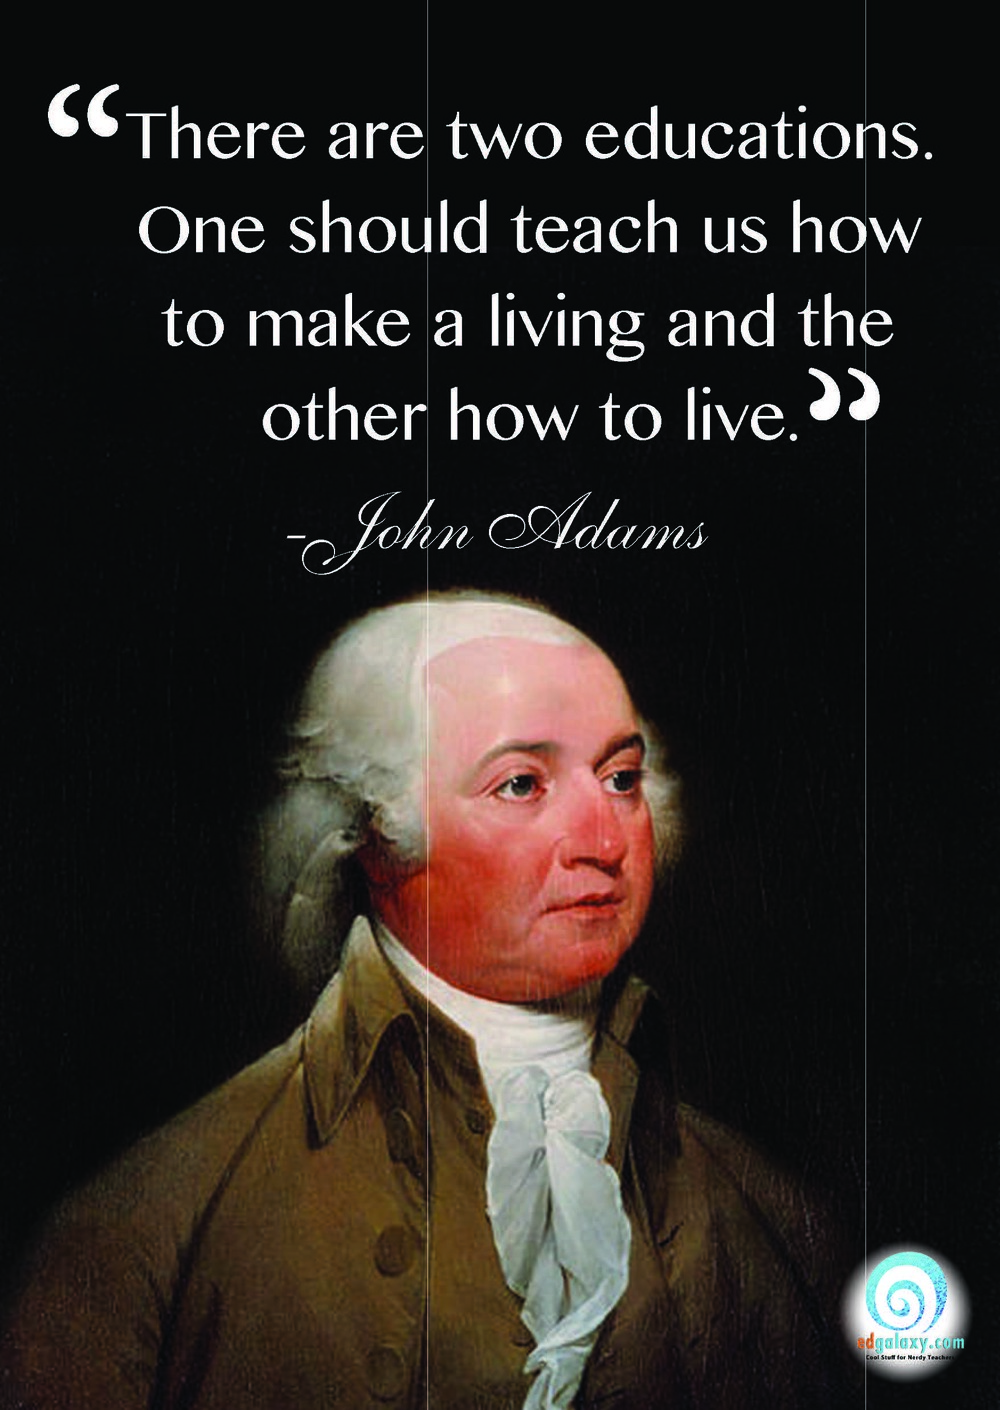 Education Quotes Posters 2 Jpg Page 11